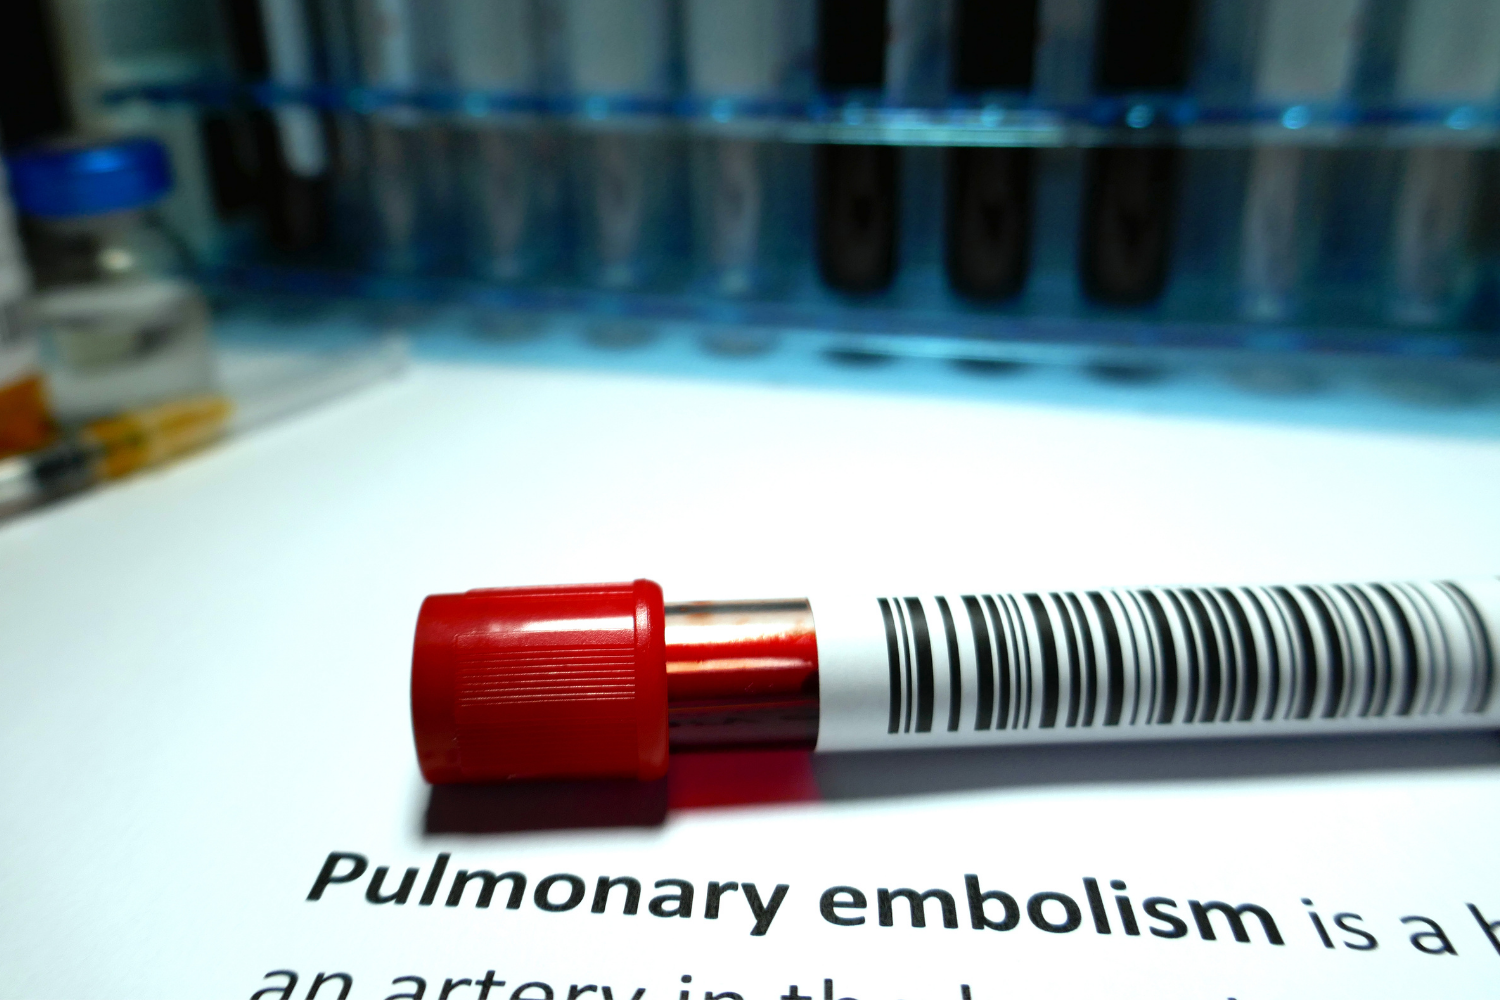 Prevalence of pulmonary embolism among patients with COPD hospitalised with acutely worsening respiratory symptoms - preview image